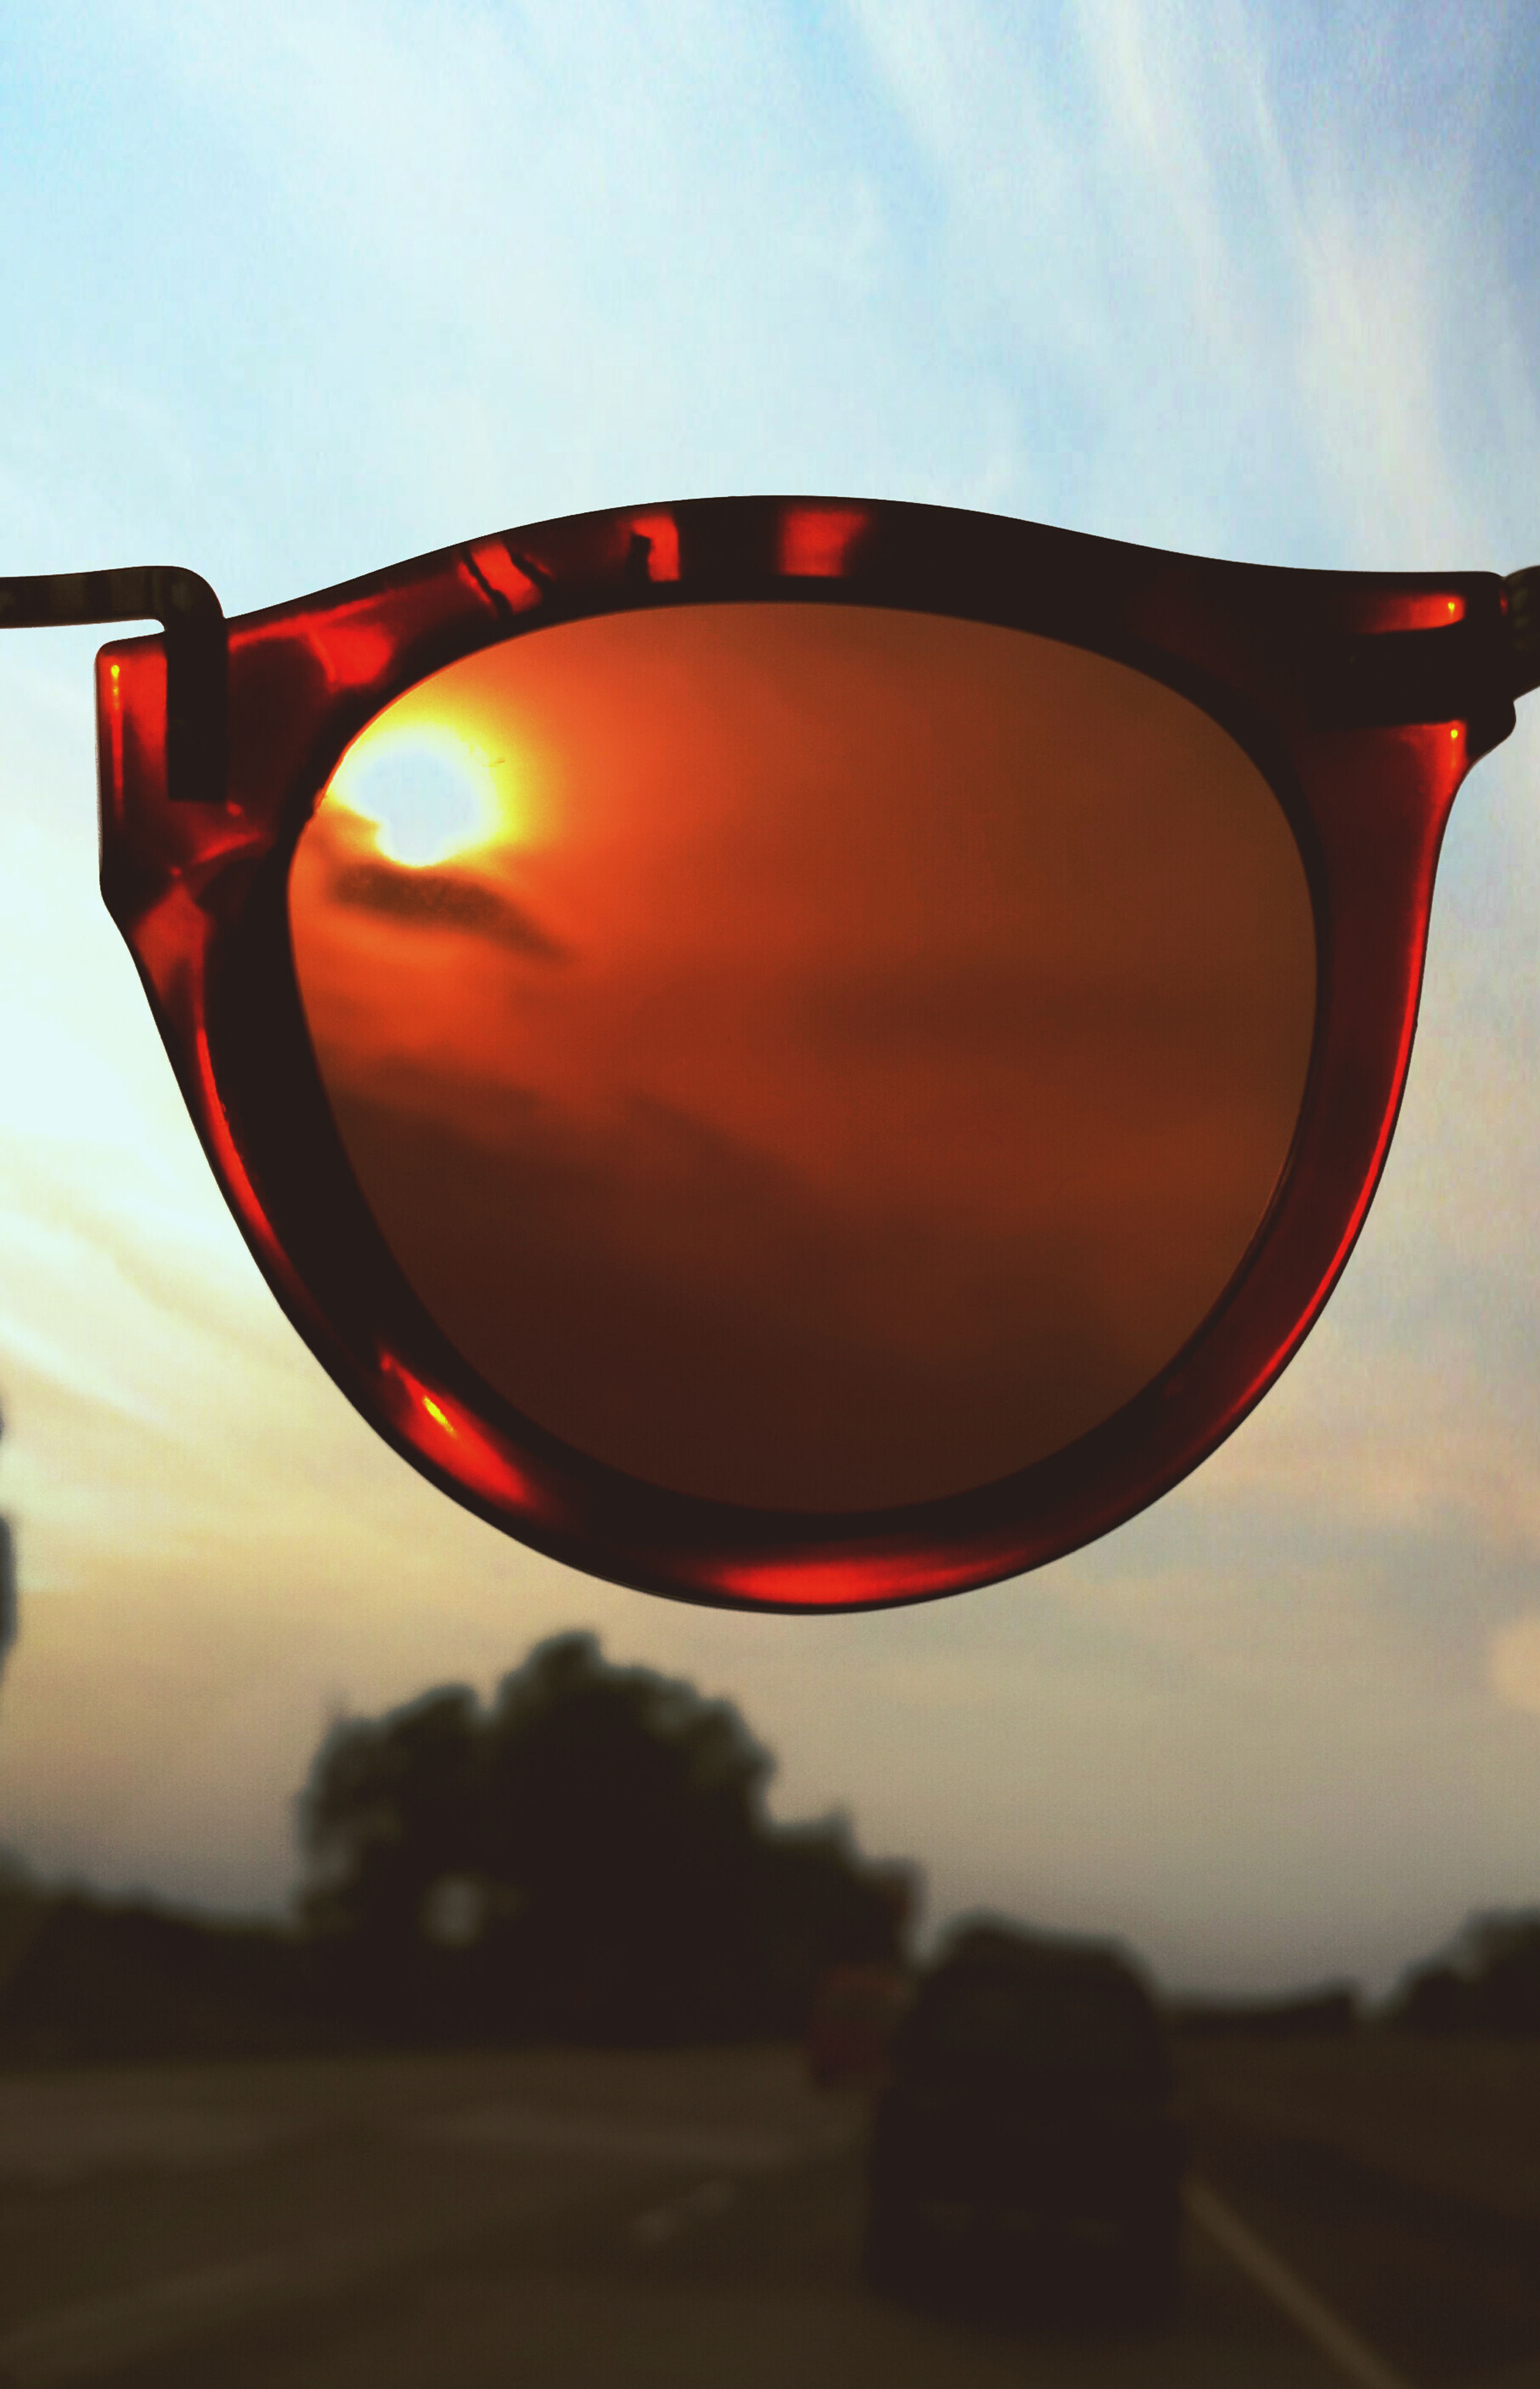 sky, sunset, transportation, close-up, orange color, cloud - sky, reflection, cloud, red, no people, circle, outdoors, nature, sunglasses, focus on foreground, sunlight, sun, part of, dusk, beauty in nature